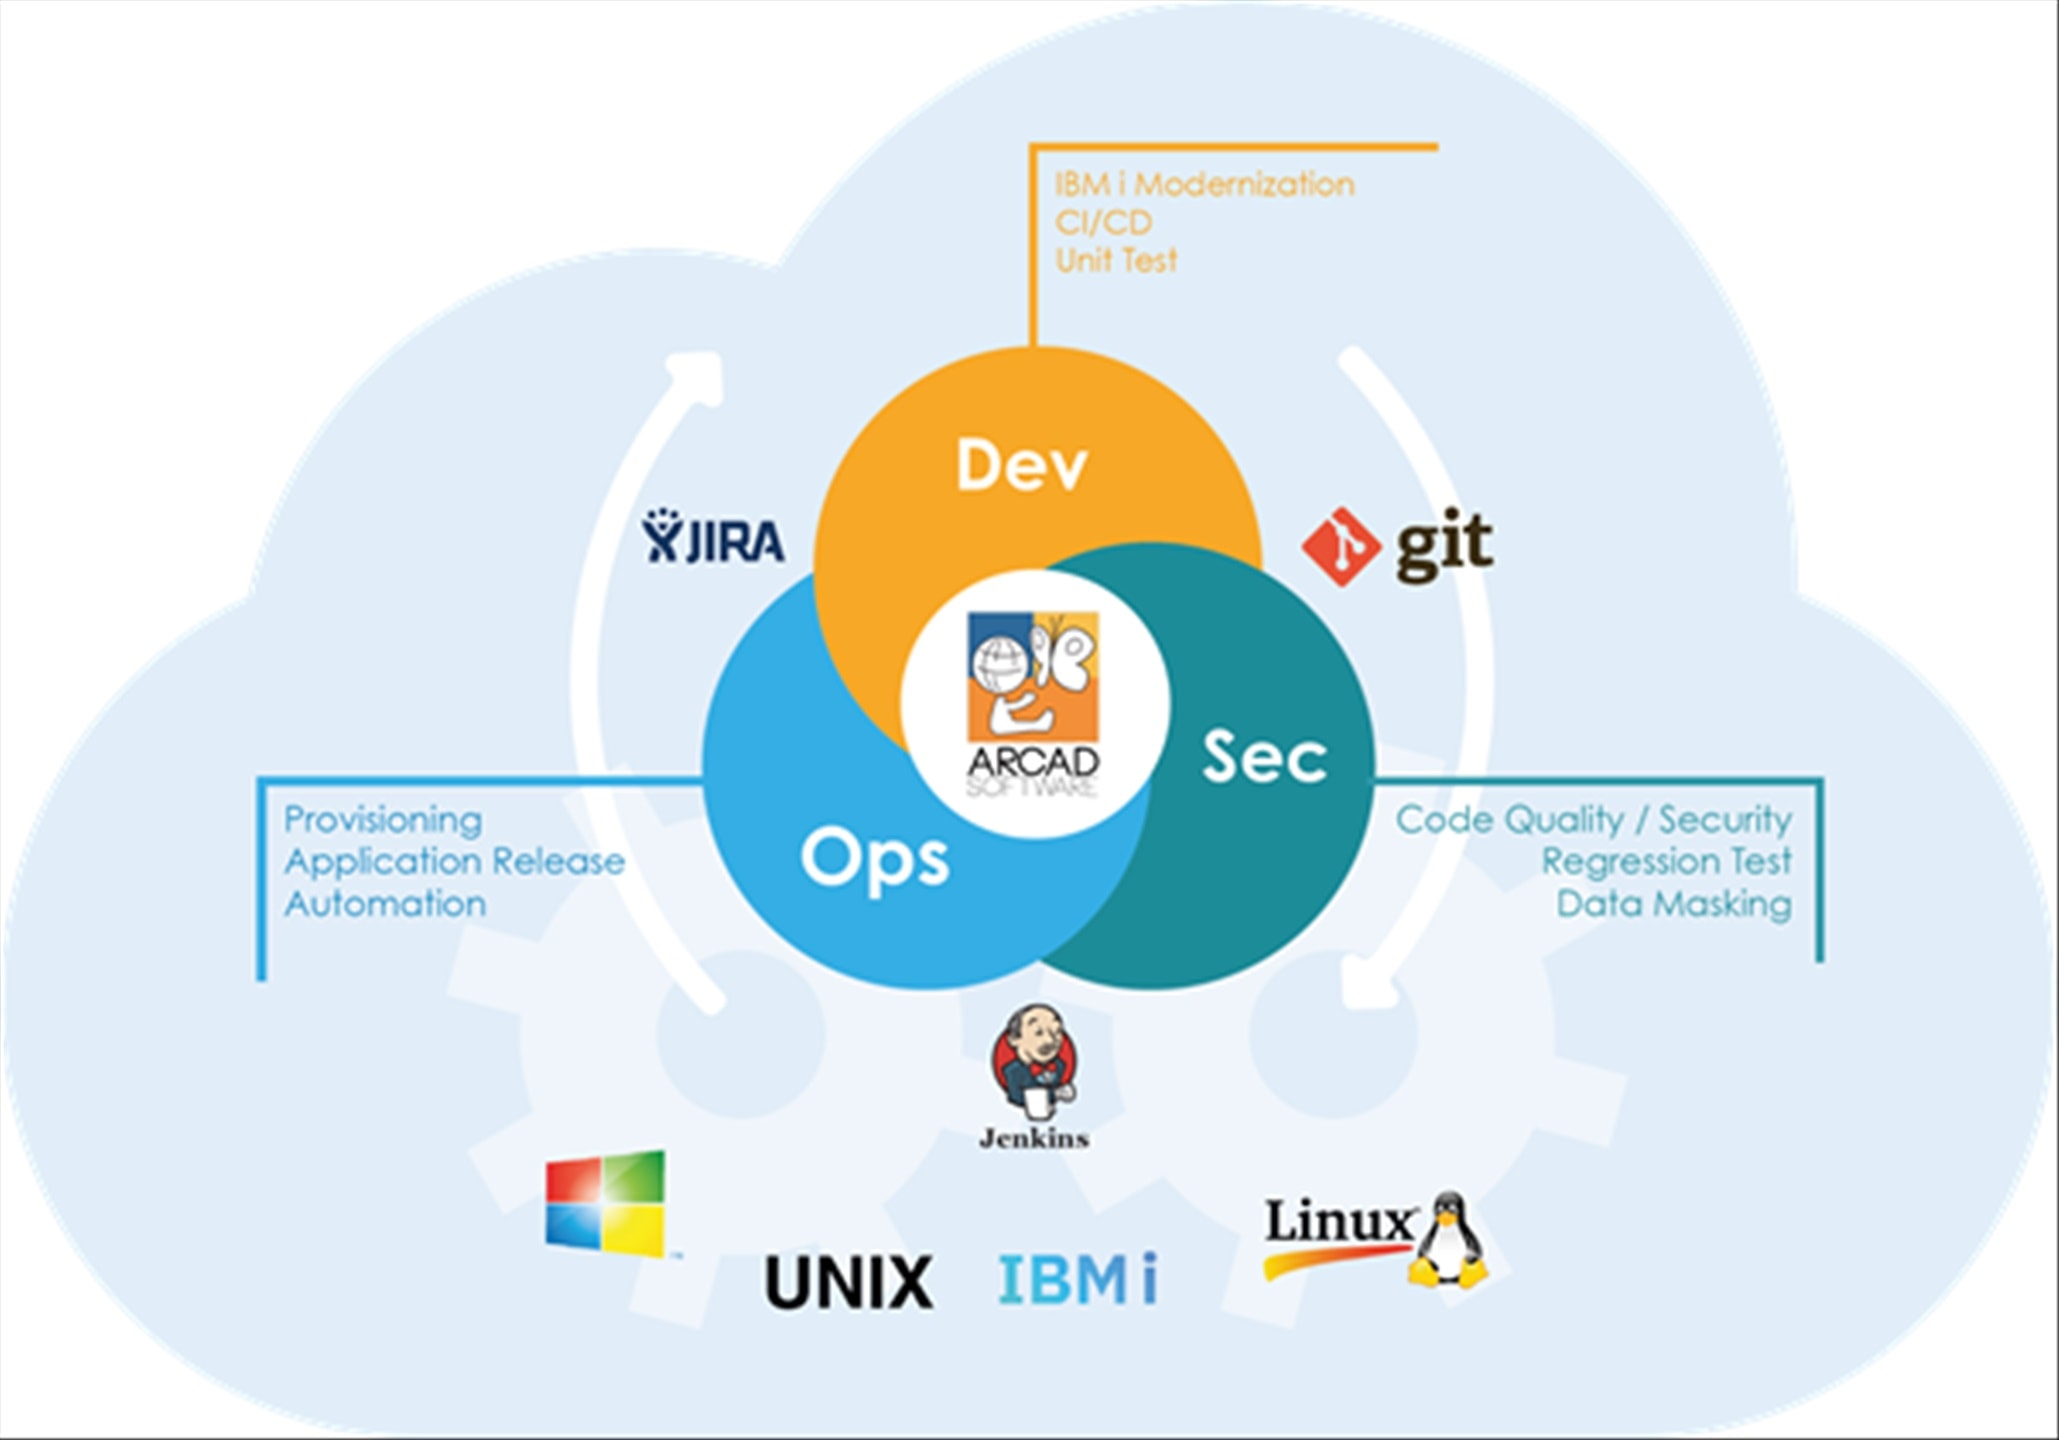 IBM i – A legacy of open source